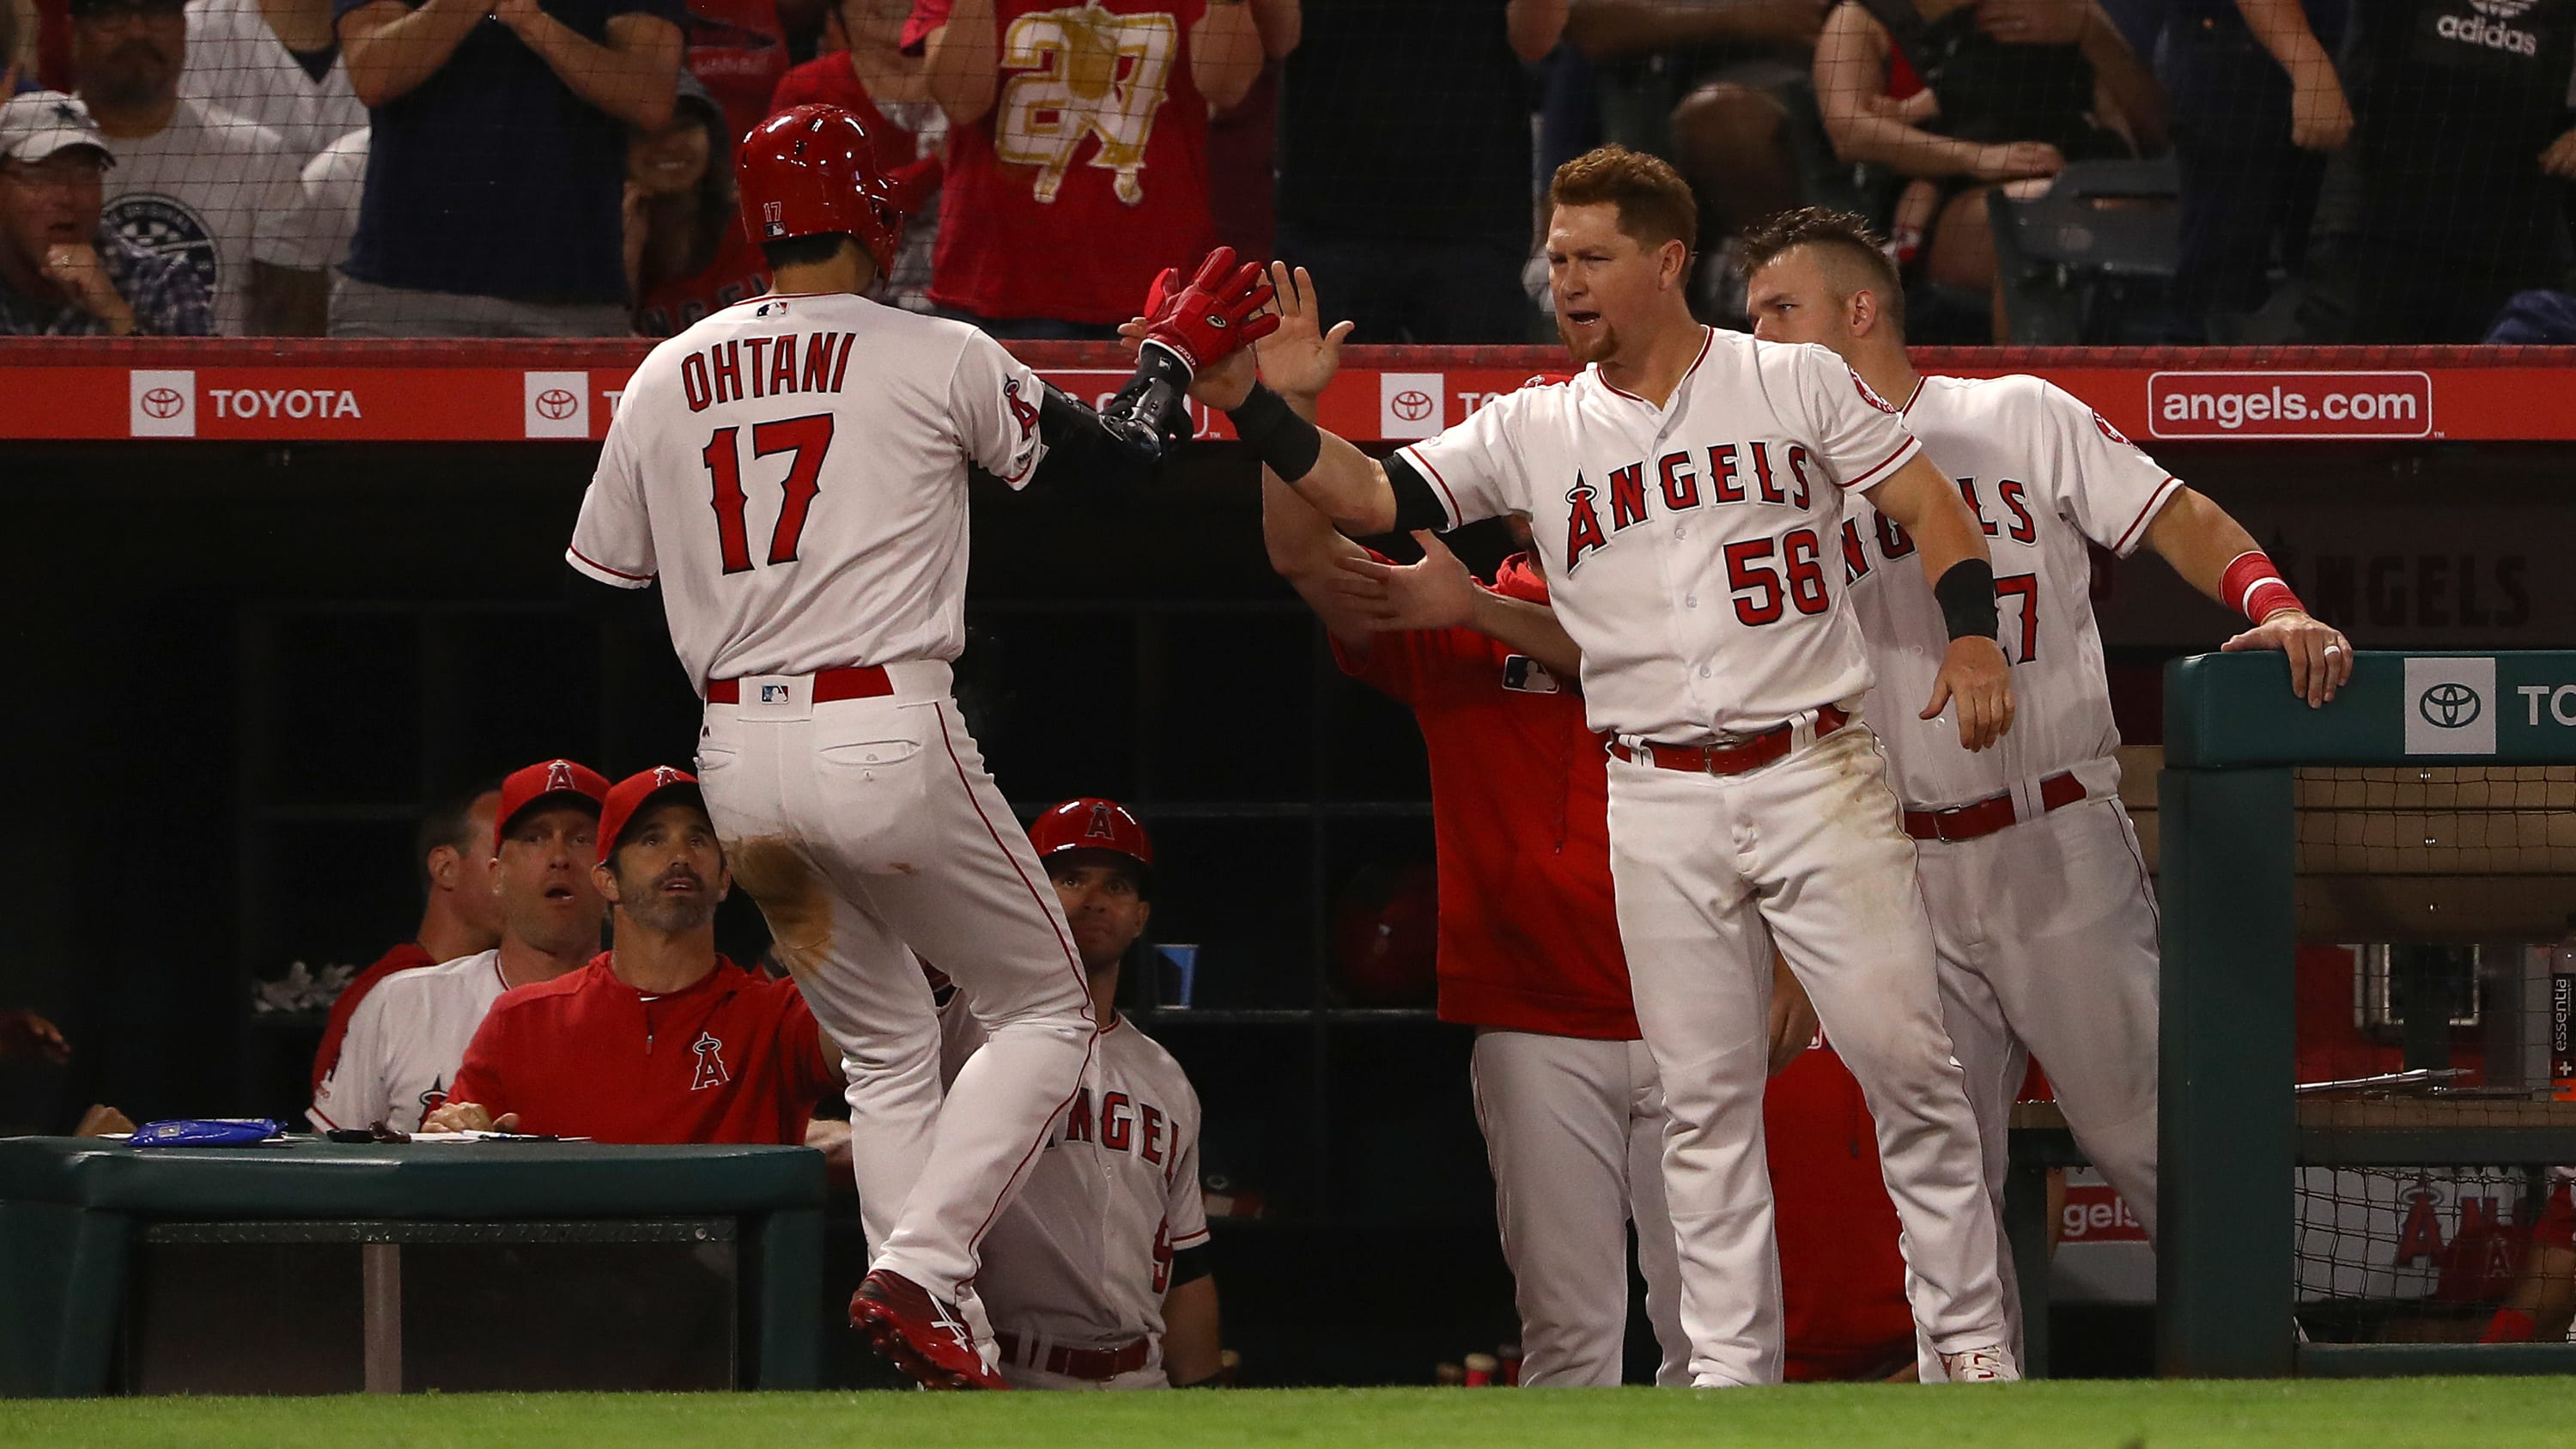 ANAHEIM, CALIFORNIA - JUNE 10: Shohei Ohtani #17 of the Los Angeles Angels is congratulated by teammates Kole Calhoun #56 and Mike Trout #27 at the dugout after Ohtani scored in the eighth inning of the MLB game against the Los Angeles Dodgers at Angel Stadium of Anaheim on June 10, 2019 in Anaheim, California. (Photo by Victor Decolongon/Getty Images)